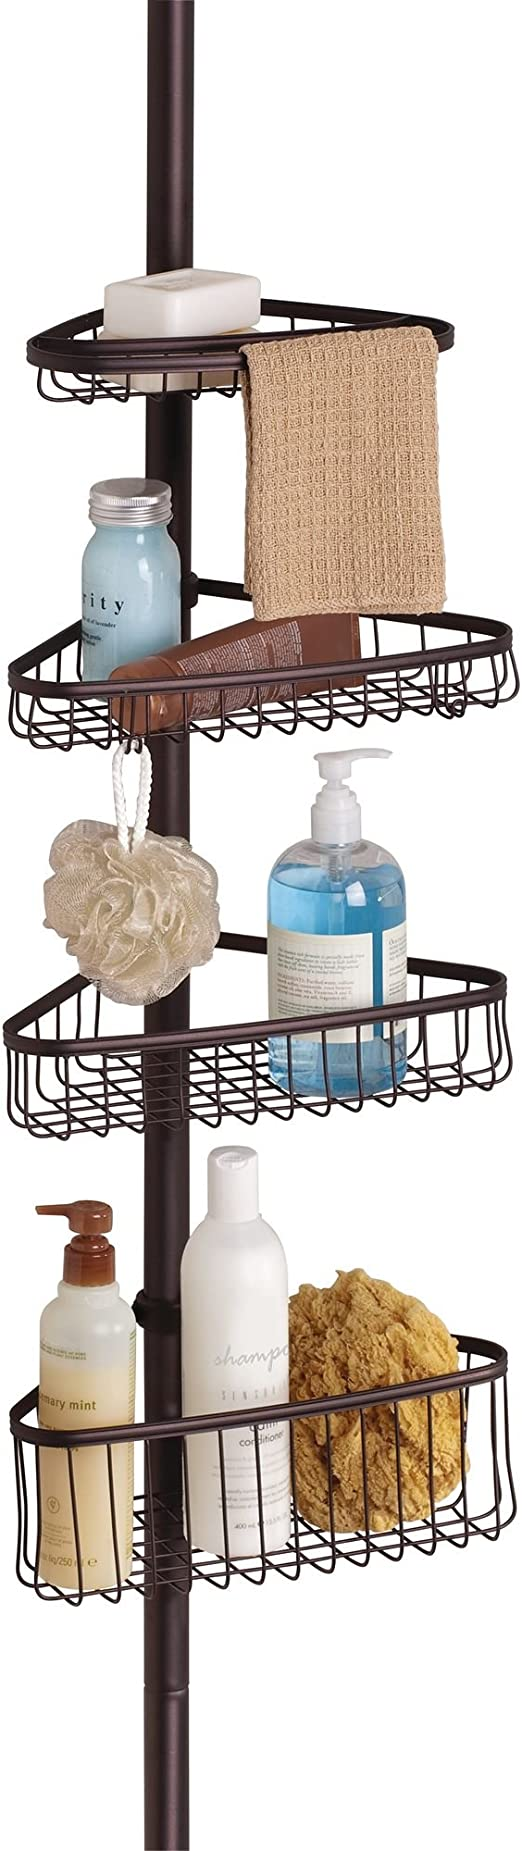 iDesign York Metal Wire Tension Rod Corner Shower Caddy Towels Silver Adjustable 5-9 Pole and Baskets for Shampoo Soap with Hooks for Razors Conditioner